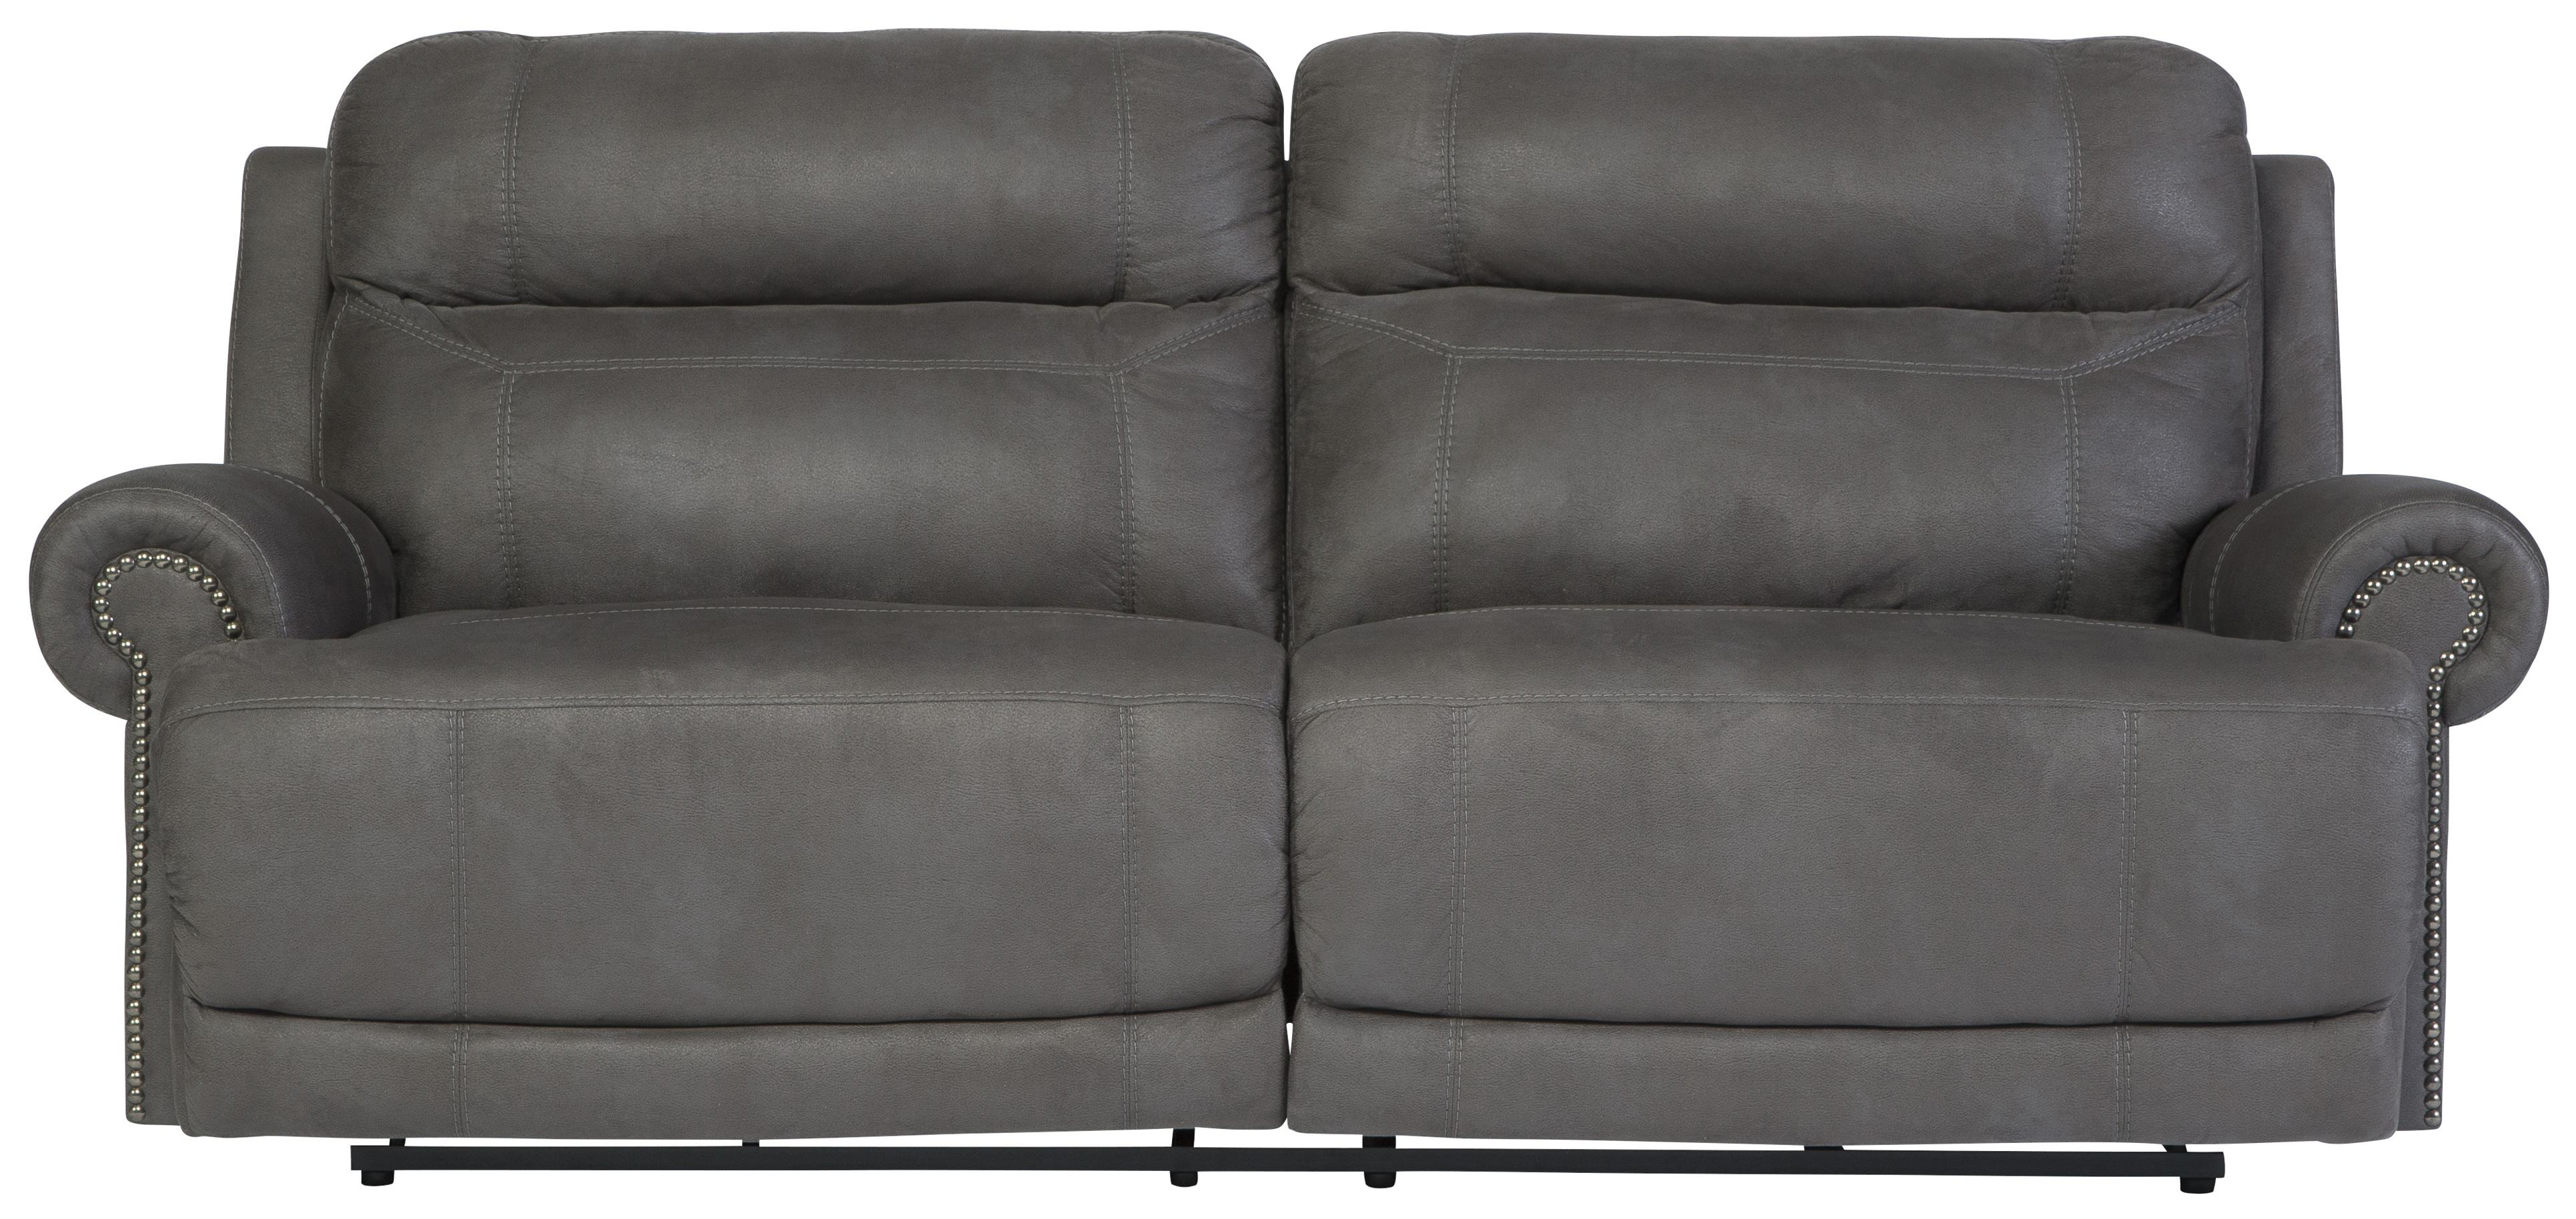 2 Seat Faux Leather Reclining Power Sofa With Rolled Arms With